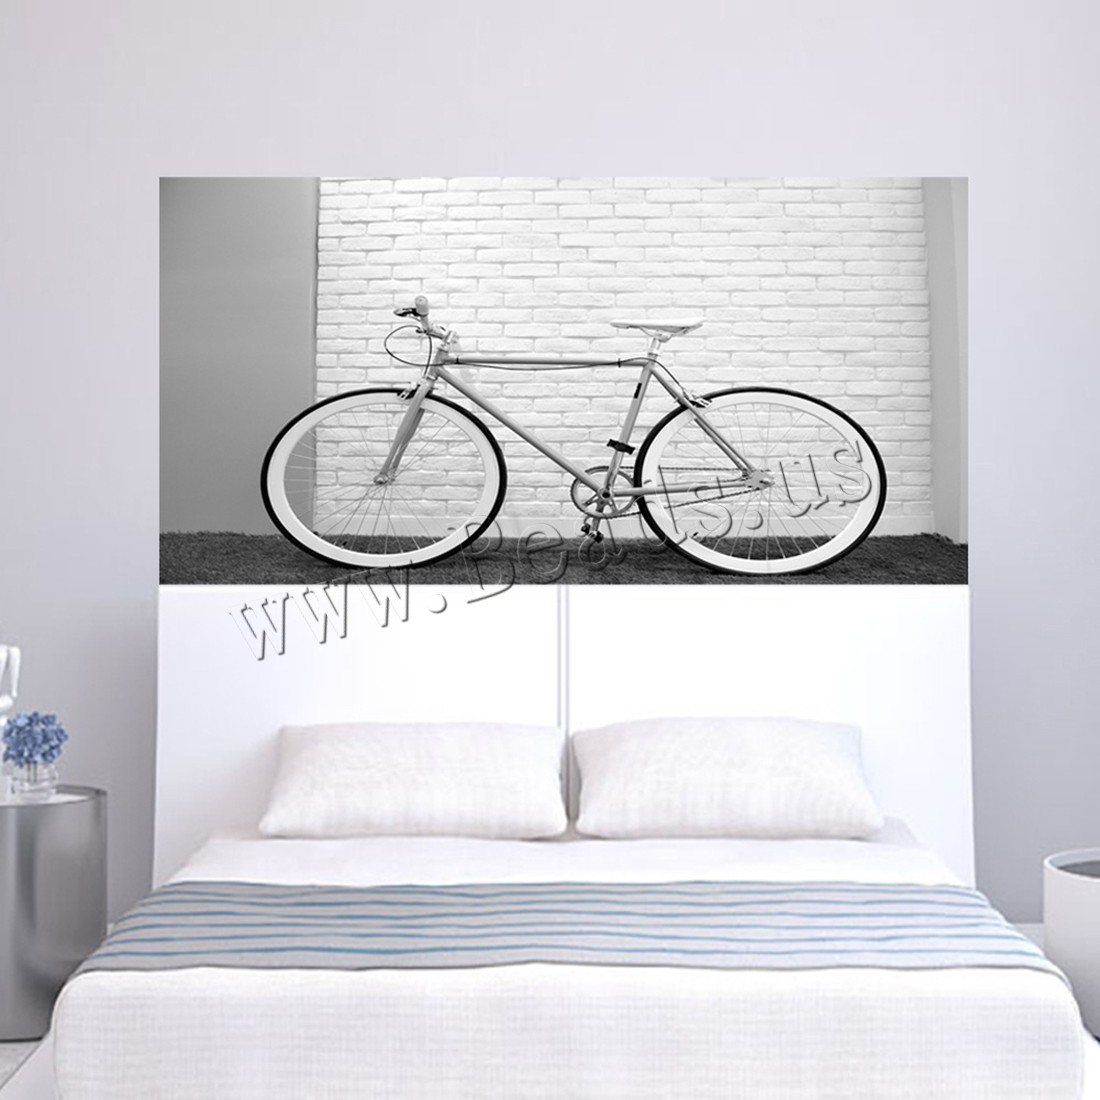 Buy 3D Wall Stickers PVC Plastic Rectangle adhesive & waterproof 450x1800mm Sold Set